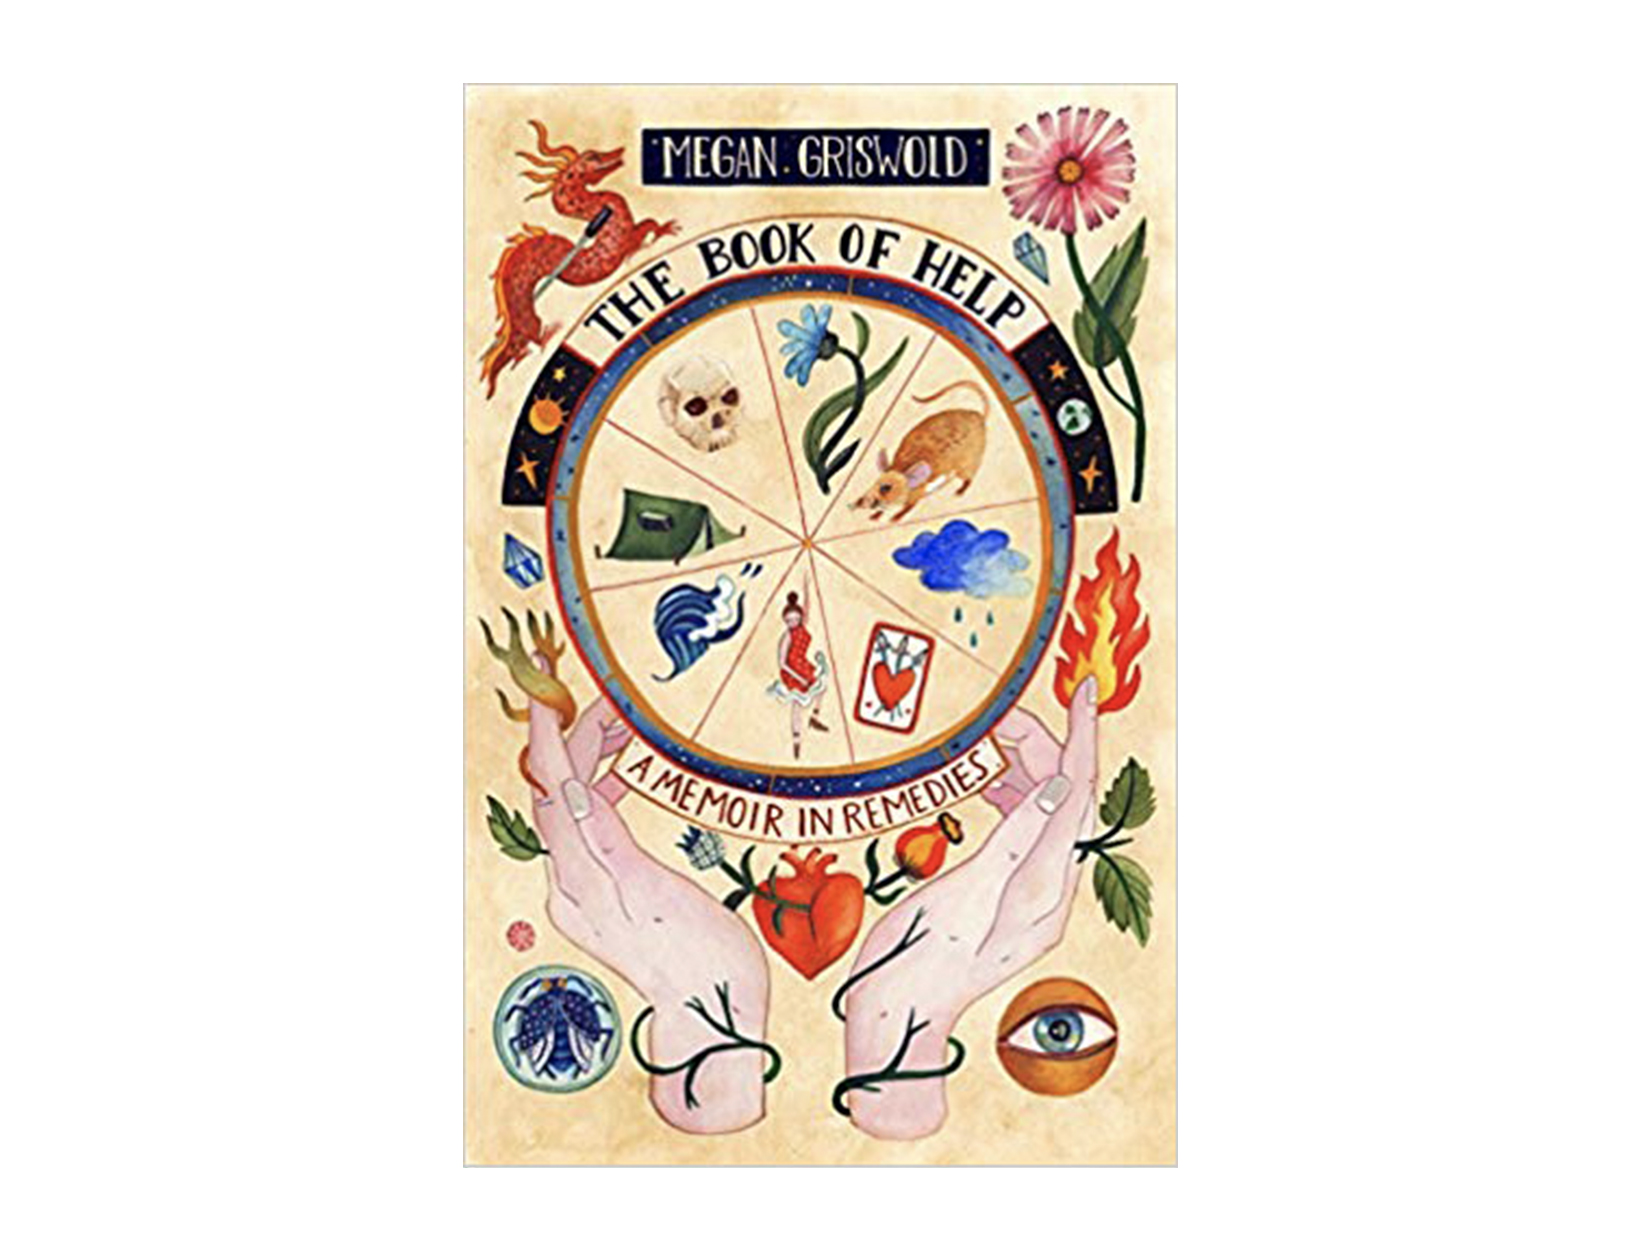 <em>The Book of Help</em> by Megan Griswold